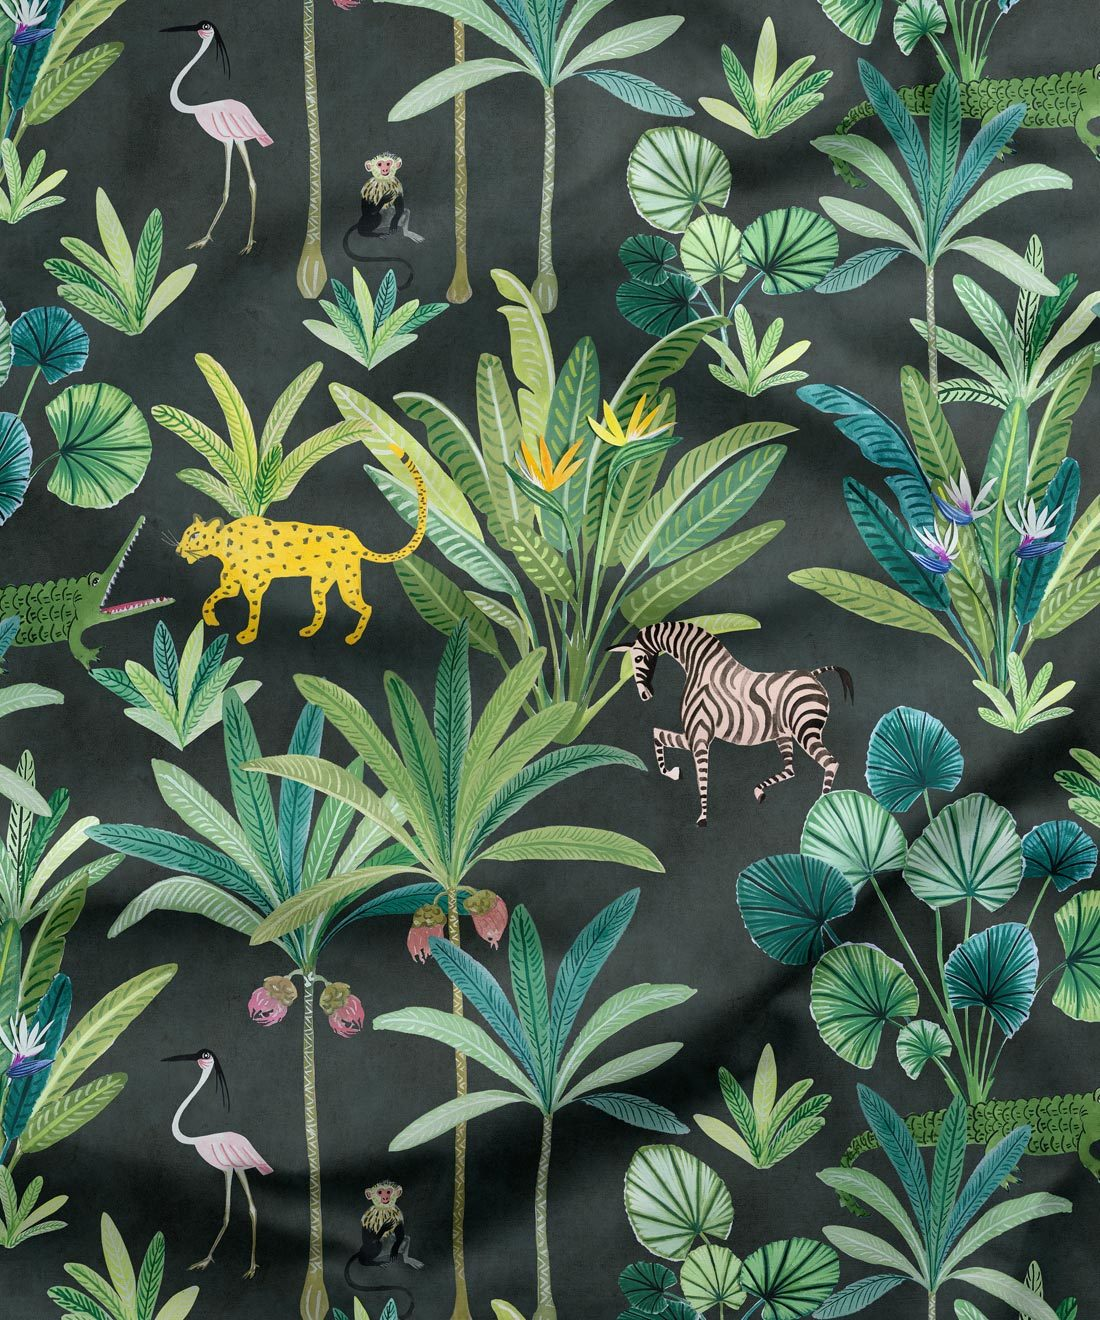 Animal Kingdom Fabric Charcoal